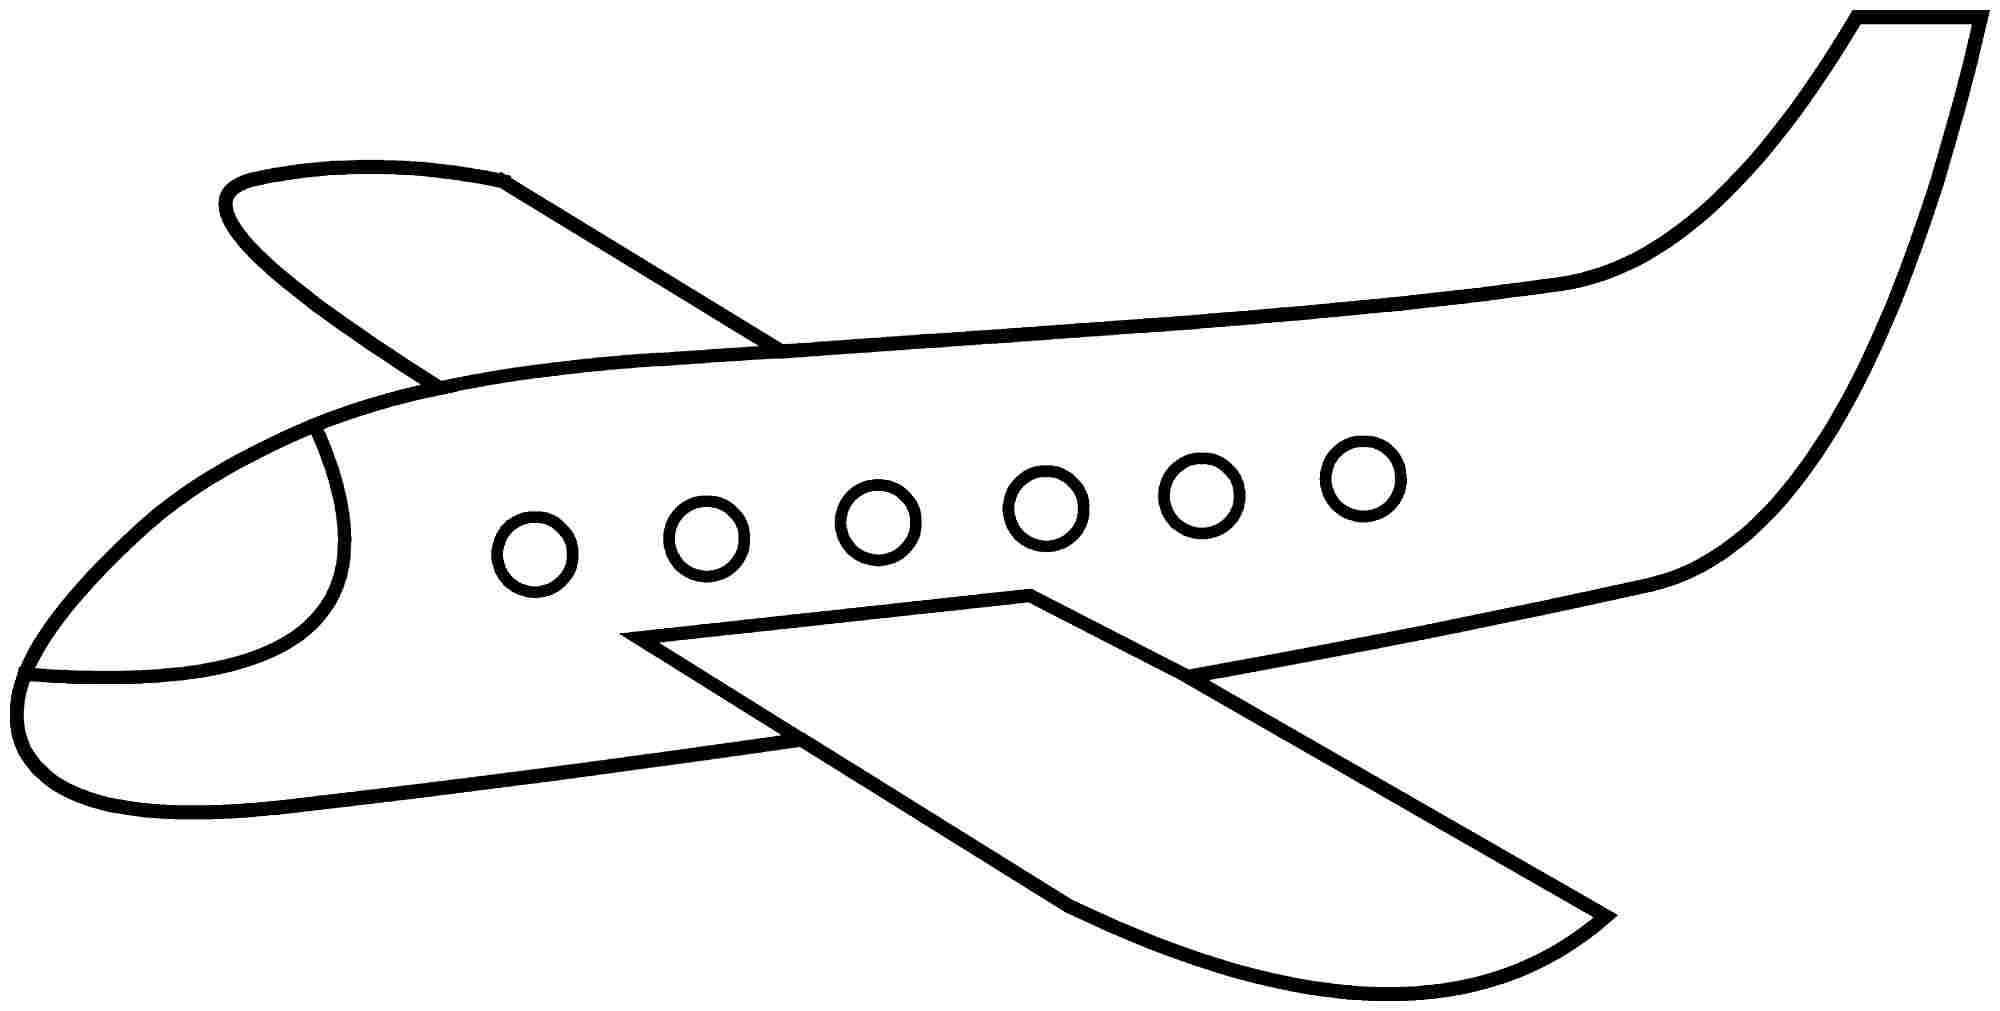 Coloring Pages For Airplanes : Airplane coloring pages preschool for all